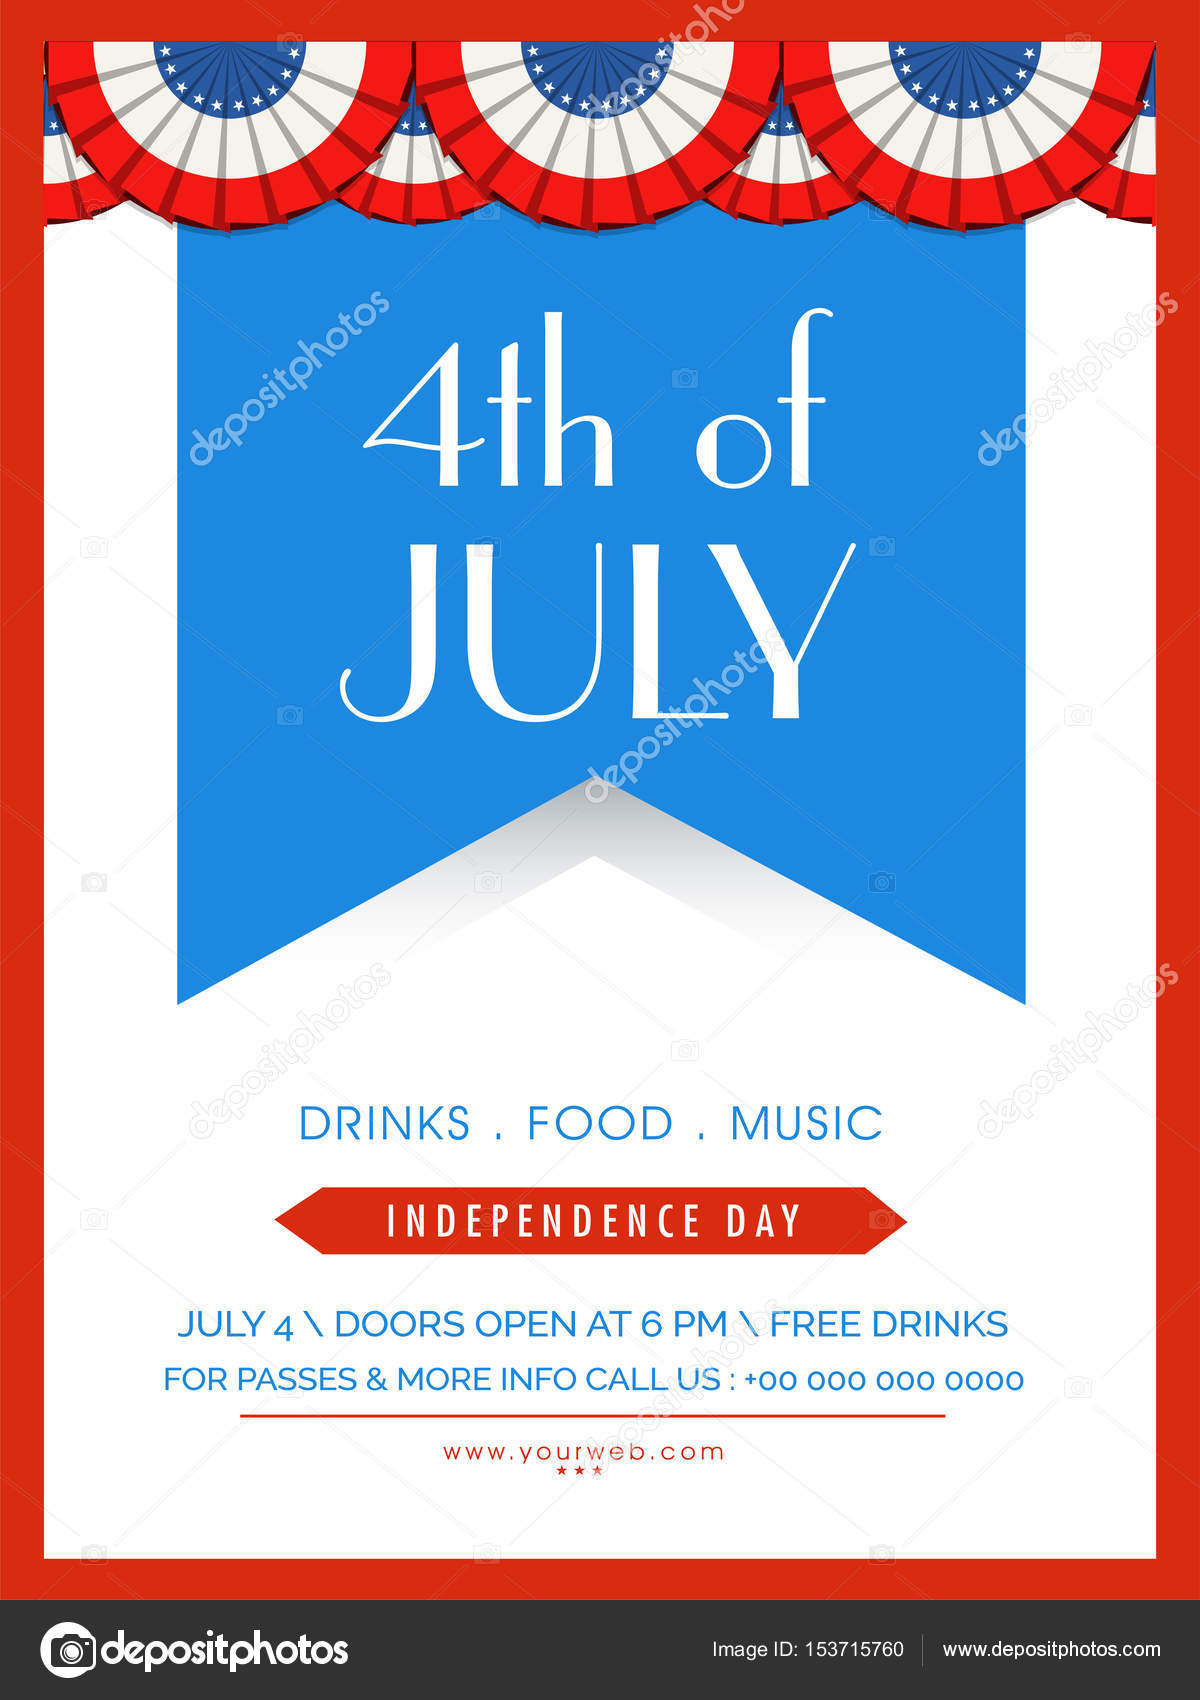 4th of July Template, Banner or Flyer \u2014 Stock Vector